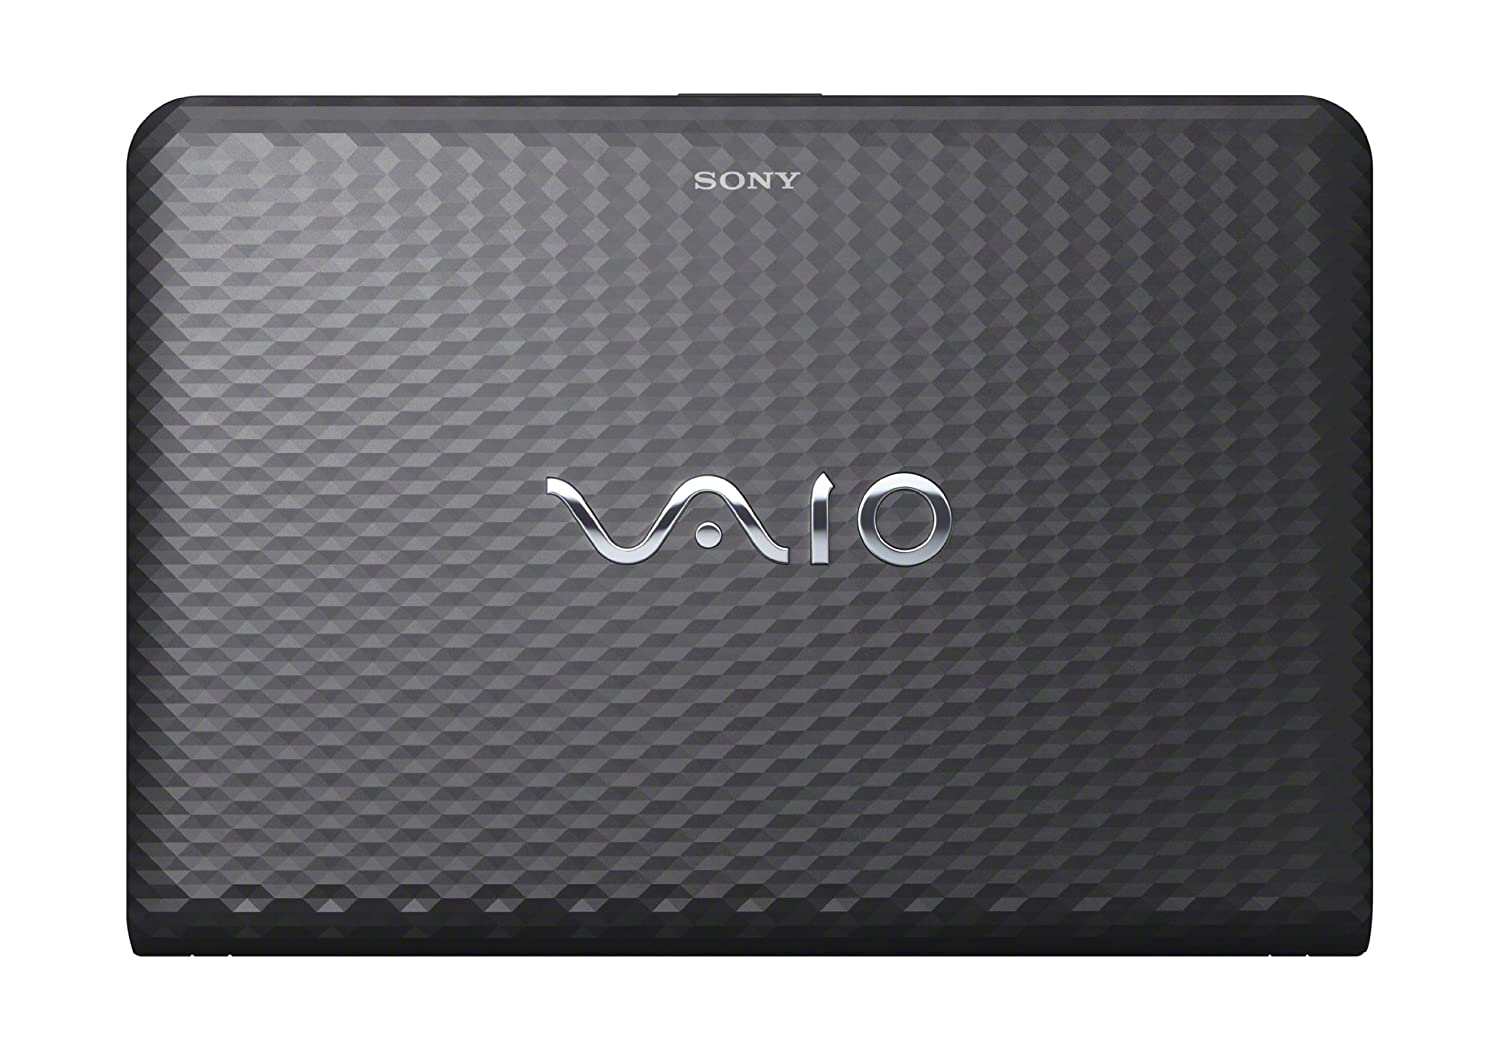 Drivers Update: Sony Vaio VPCEG23FX/B Intel Wireless Display